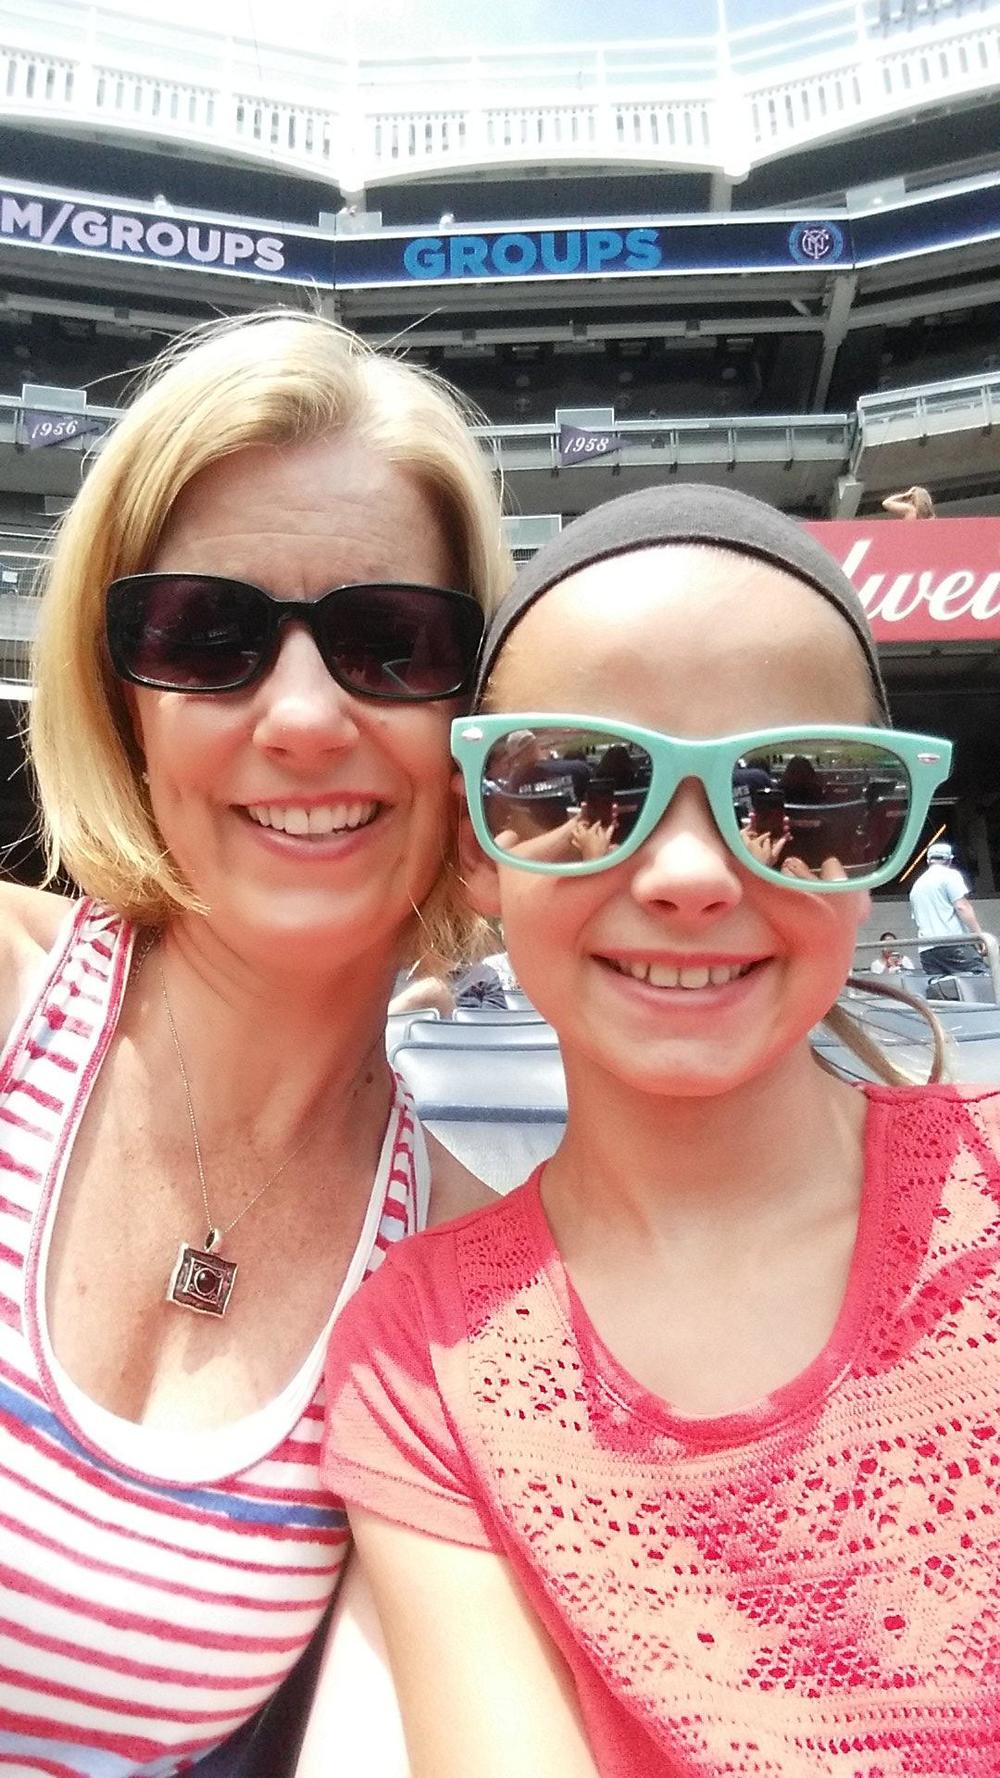 """Great day at Yankee Stadium with my daughter watching the soccer match. Thanks for making this possible!"" - US Air Force Servicewoman"